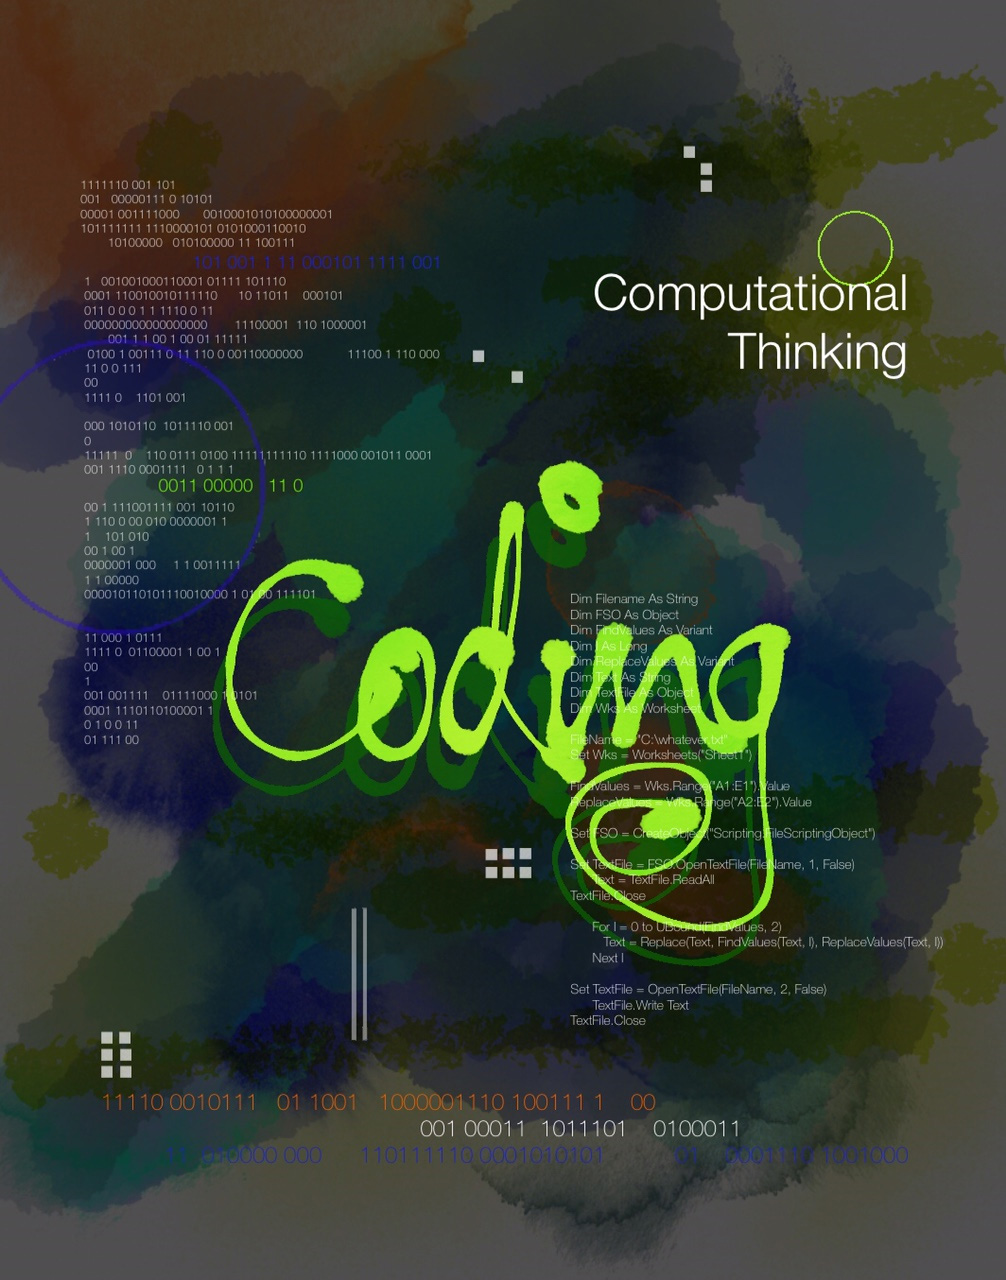 Coding - Computational Thinking